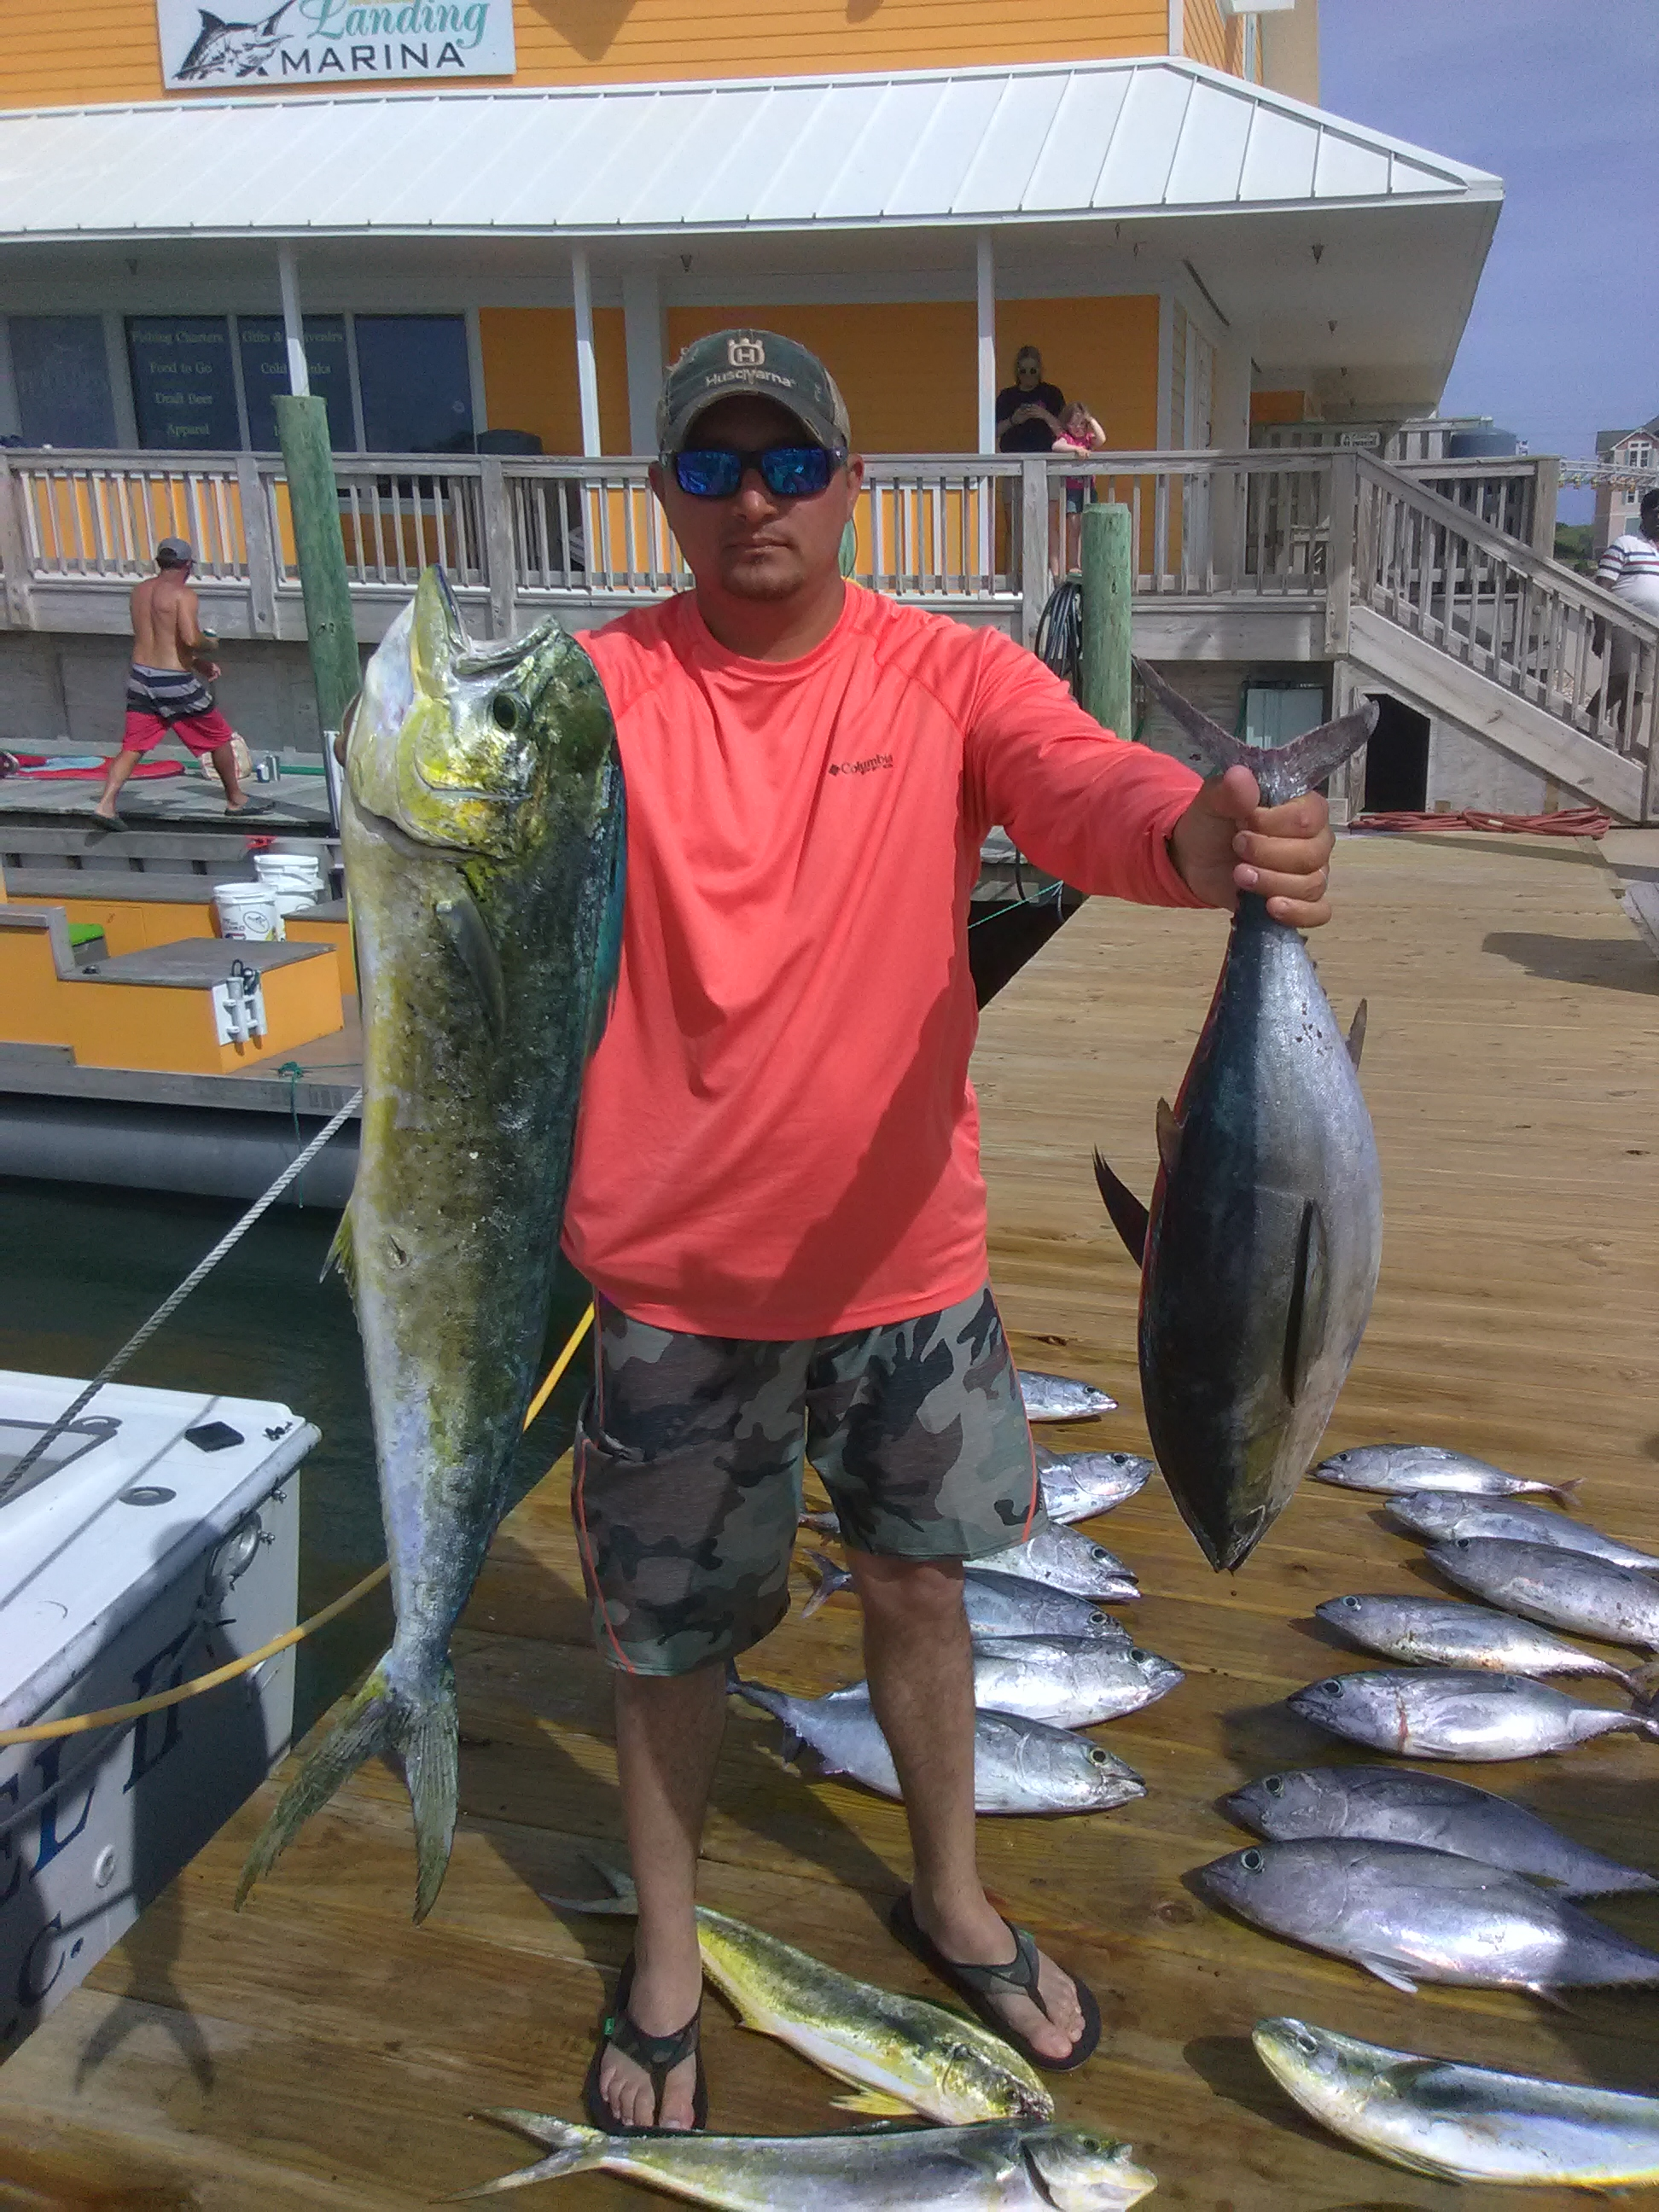 Fishing with Captain Bruce out of Hatteras Landing Marina